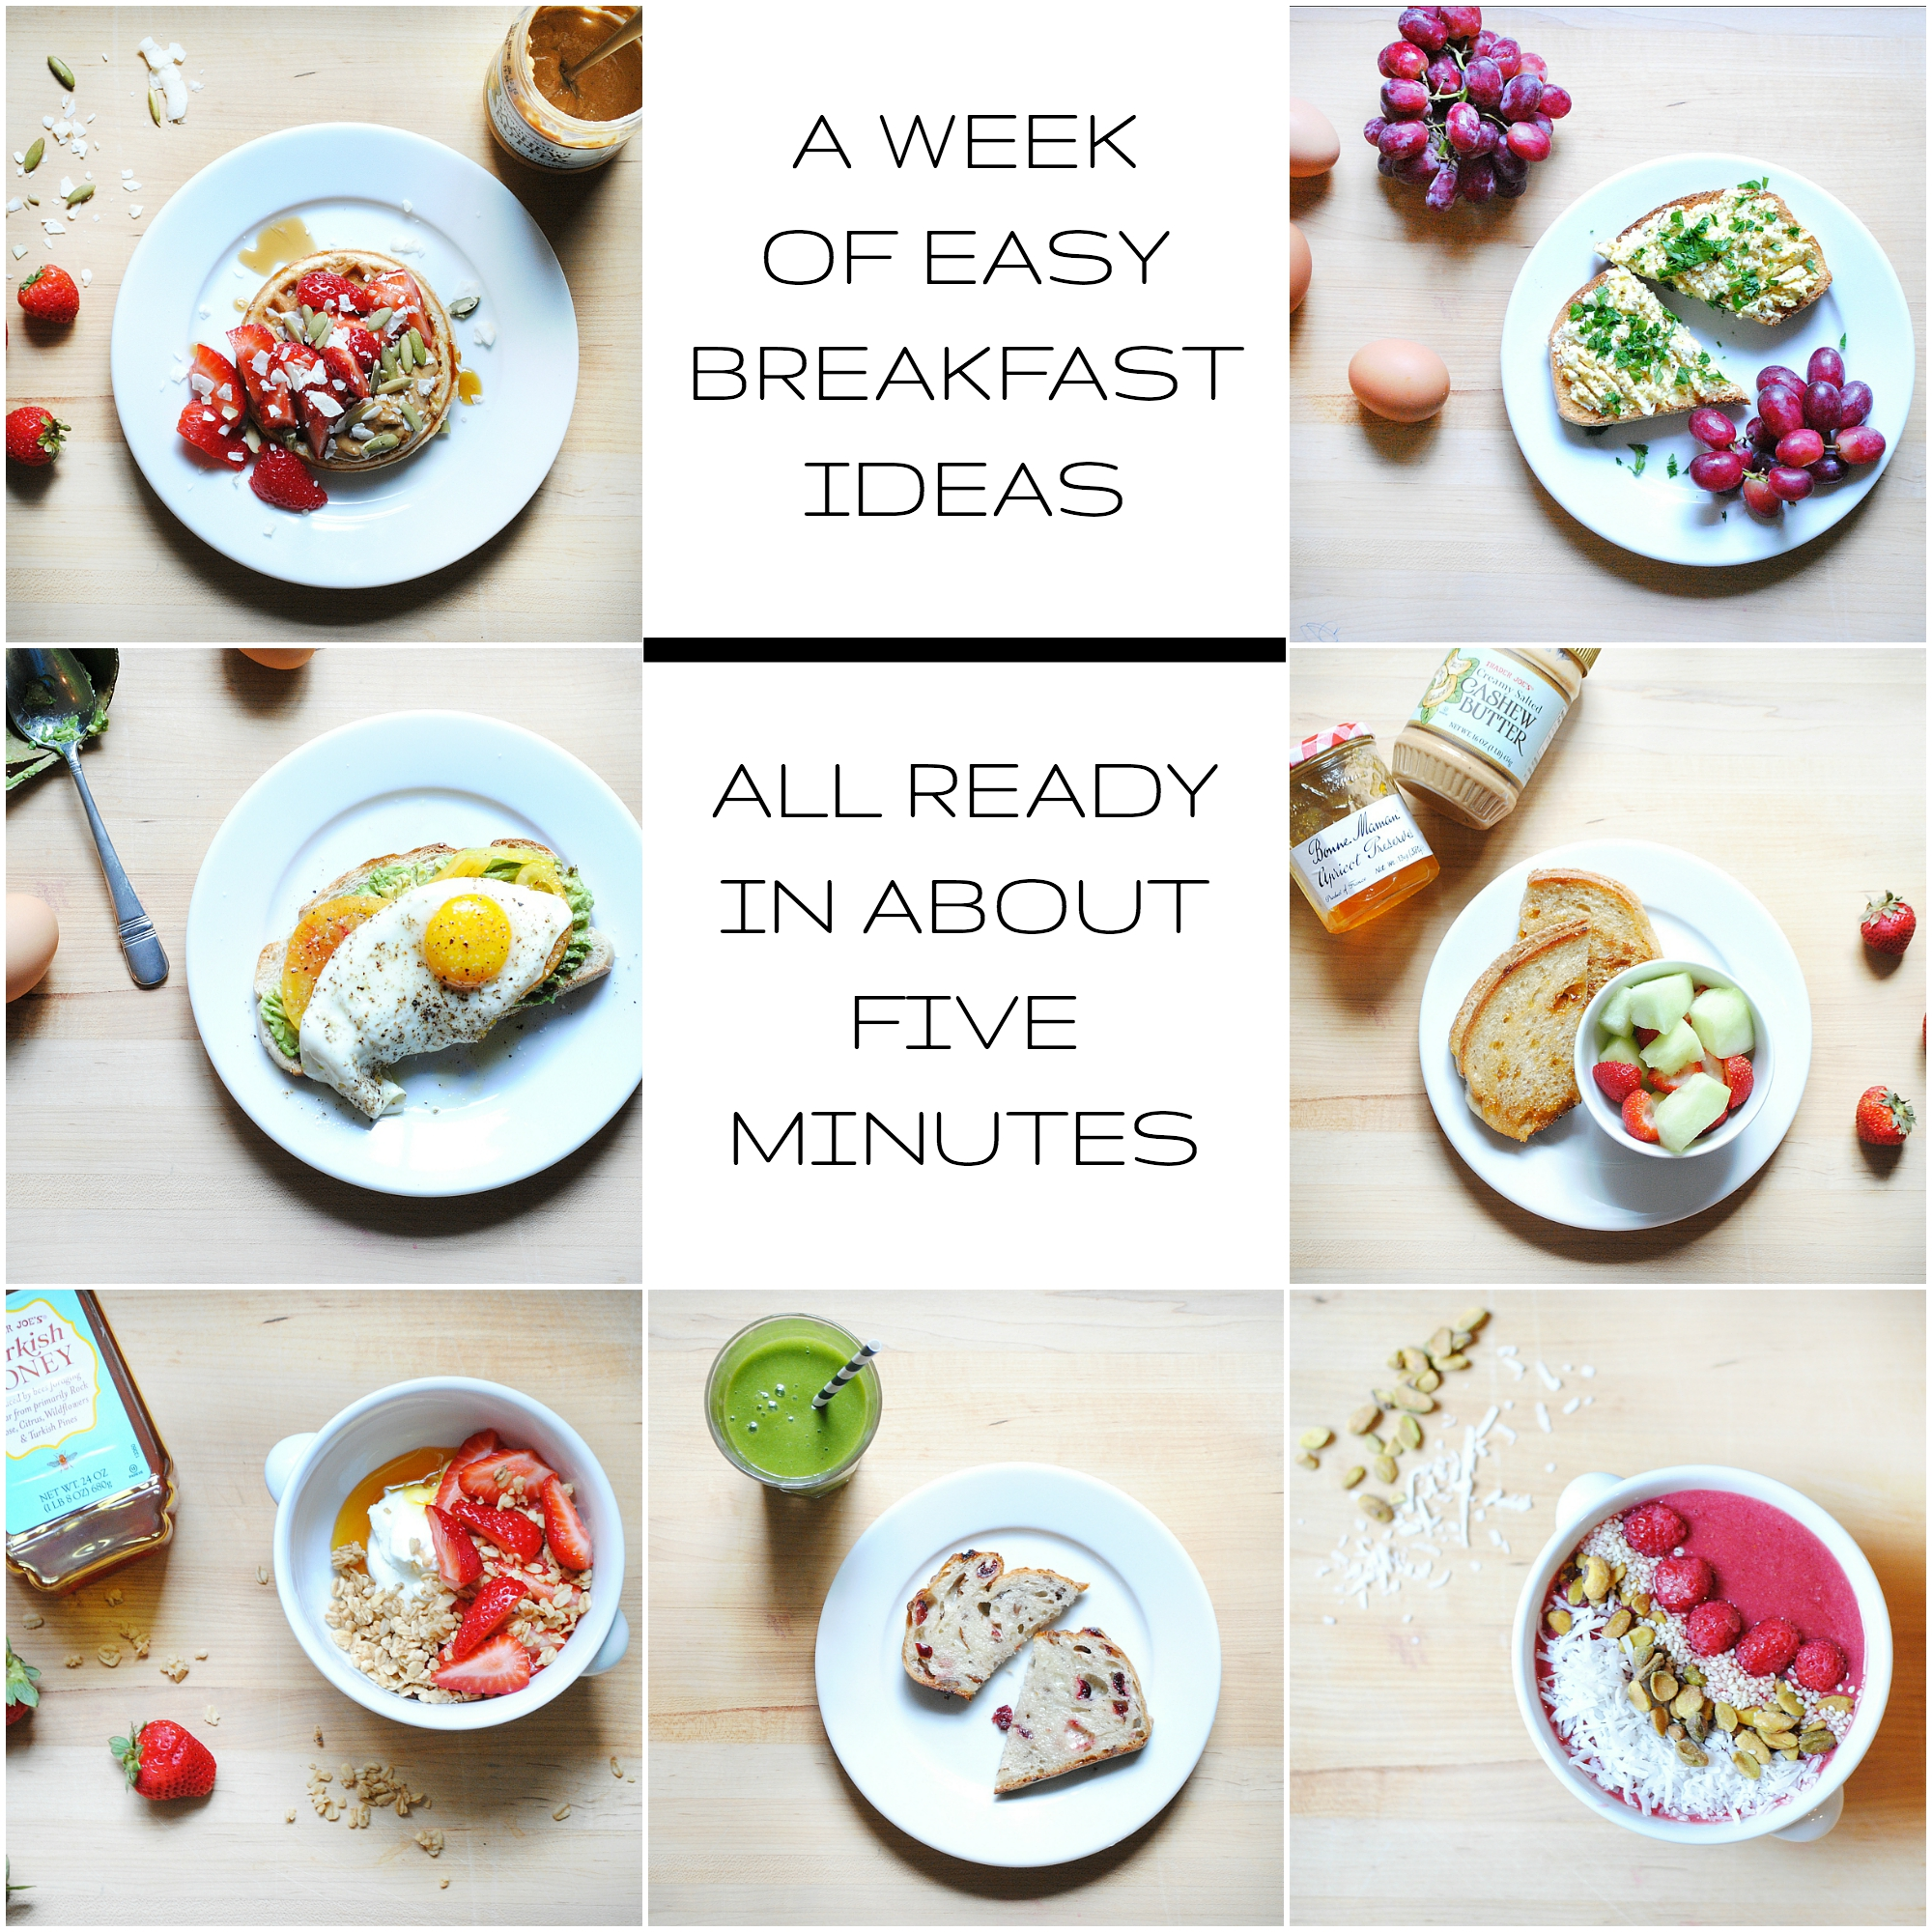 a week of healthy, easy breakfast ideas - all ready in about five